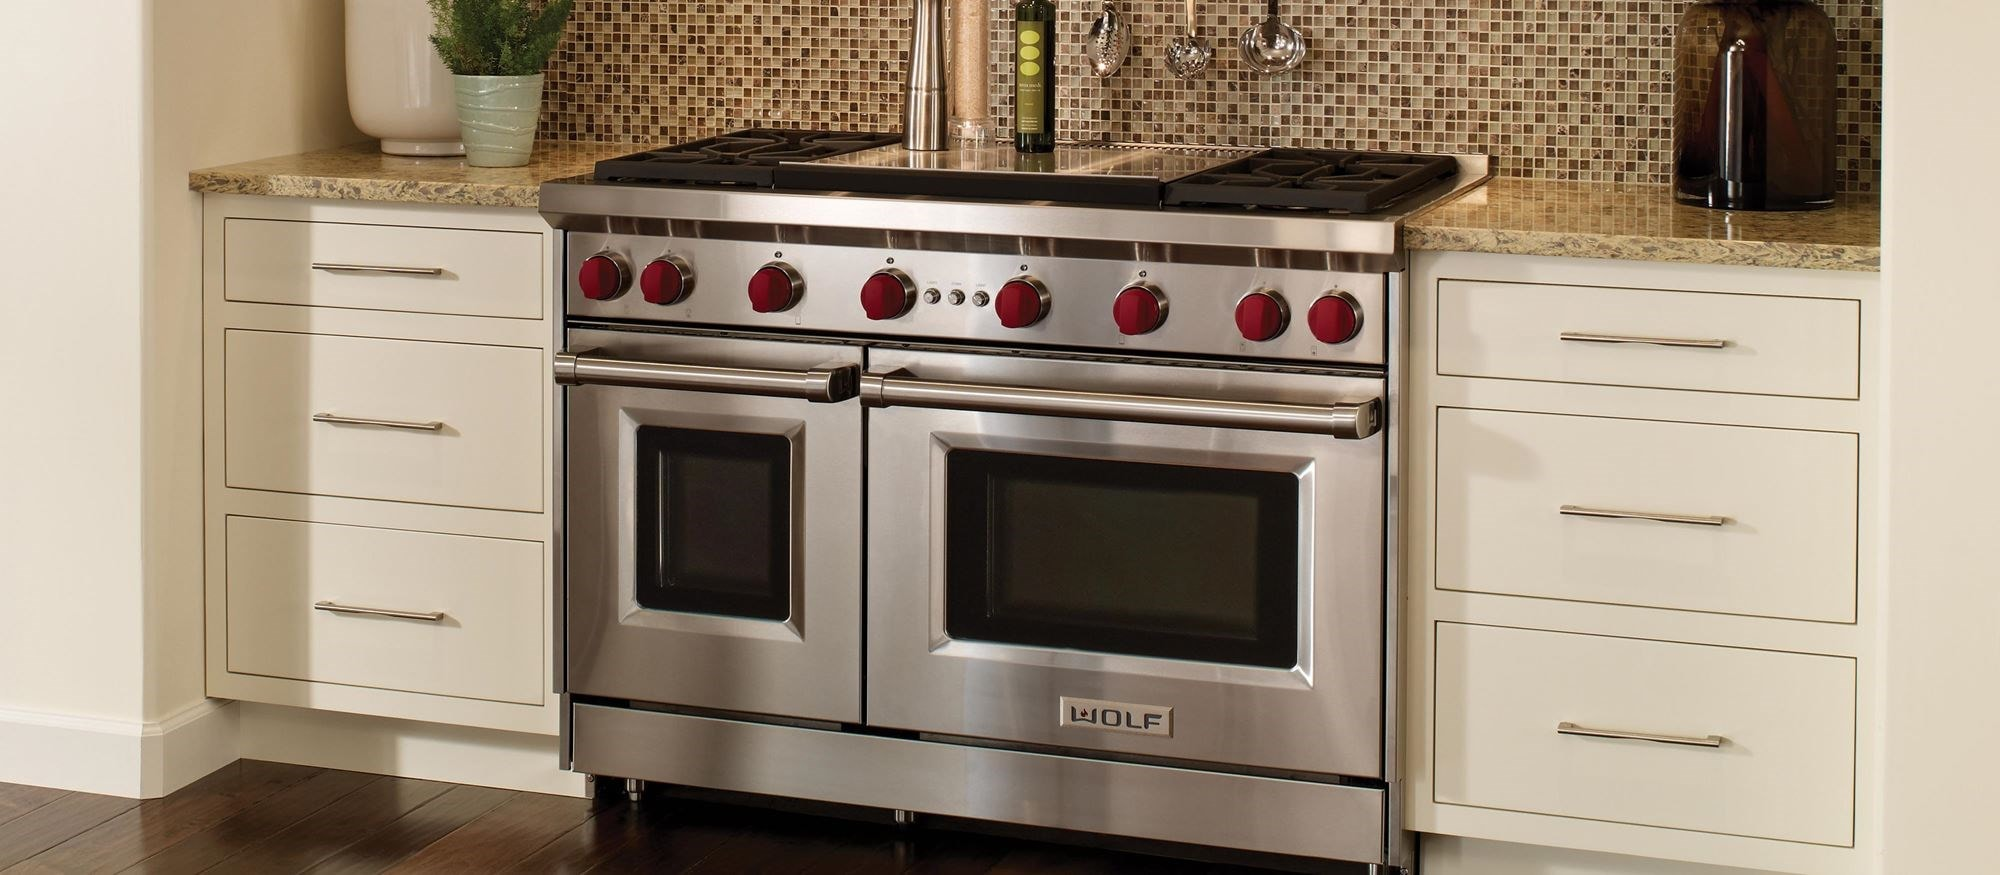 "48"" Gas Range - 4 Burners and Infrared Dual Griddle (GR484DG) Wolf Rangetop"